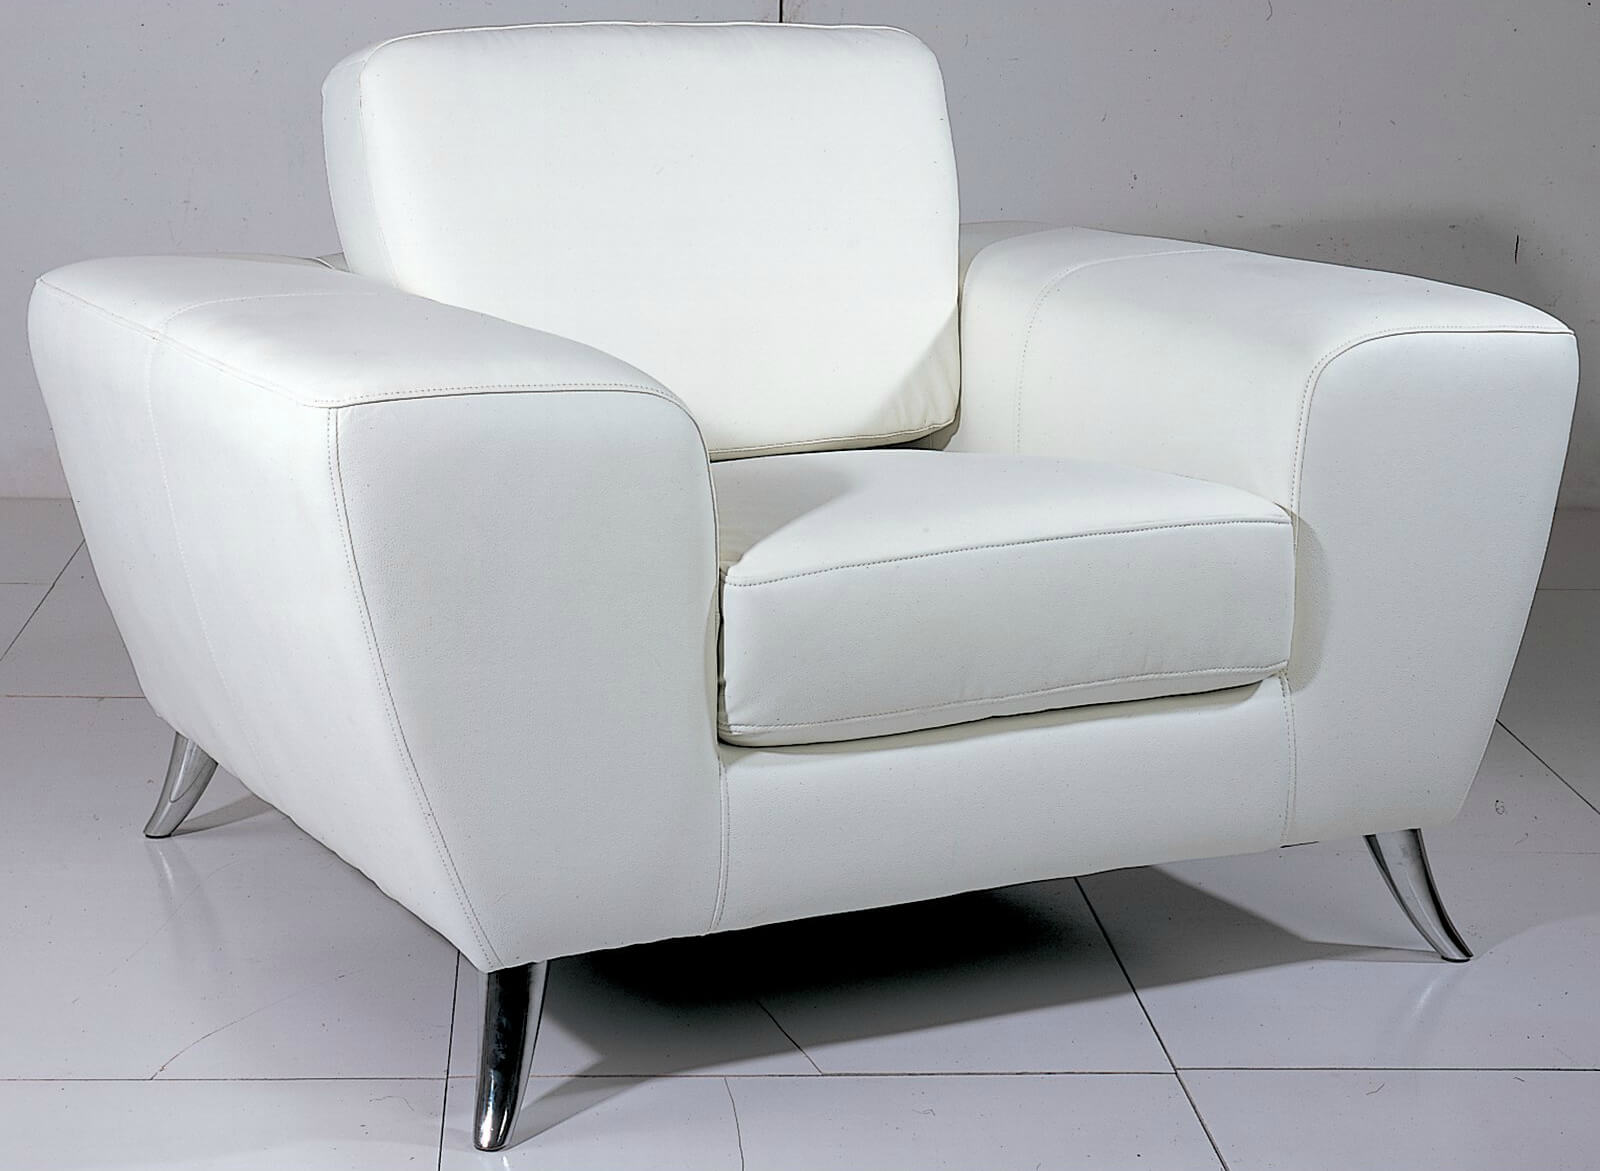 37 White Modern Accent Chairs For The Living Room. Best Small Flat Screen Tv For Kitchen. Unfinished Kitchen Island Breakfast Bar. Red And White Kitchen Cabinets. French Kitchen Ideas. Kidkraft Vintage Kitchen White Best Price. Kitchen Theme Ideas For Decorating. Islands For Kitchens Ideas. Kitchen Island With Seating Ideas